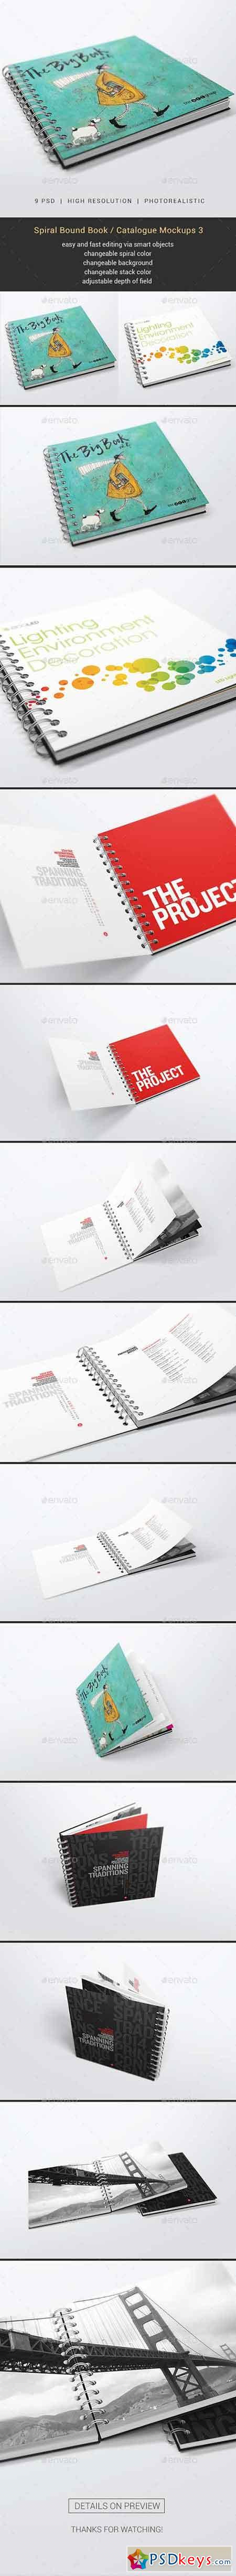 Spiral Bound Book Catalogue Mockups 3 20132524